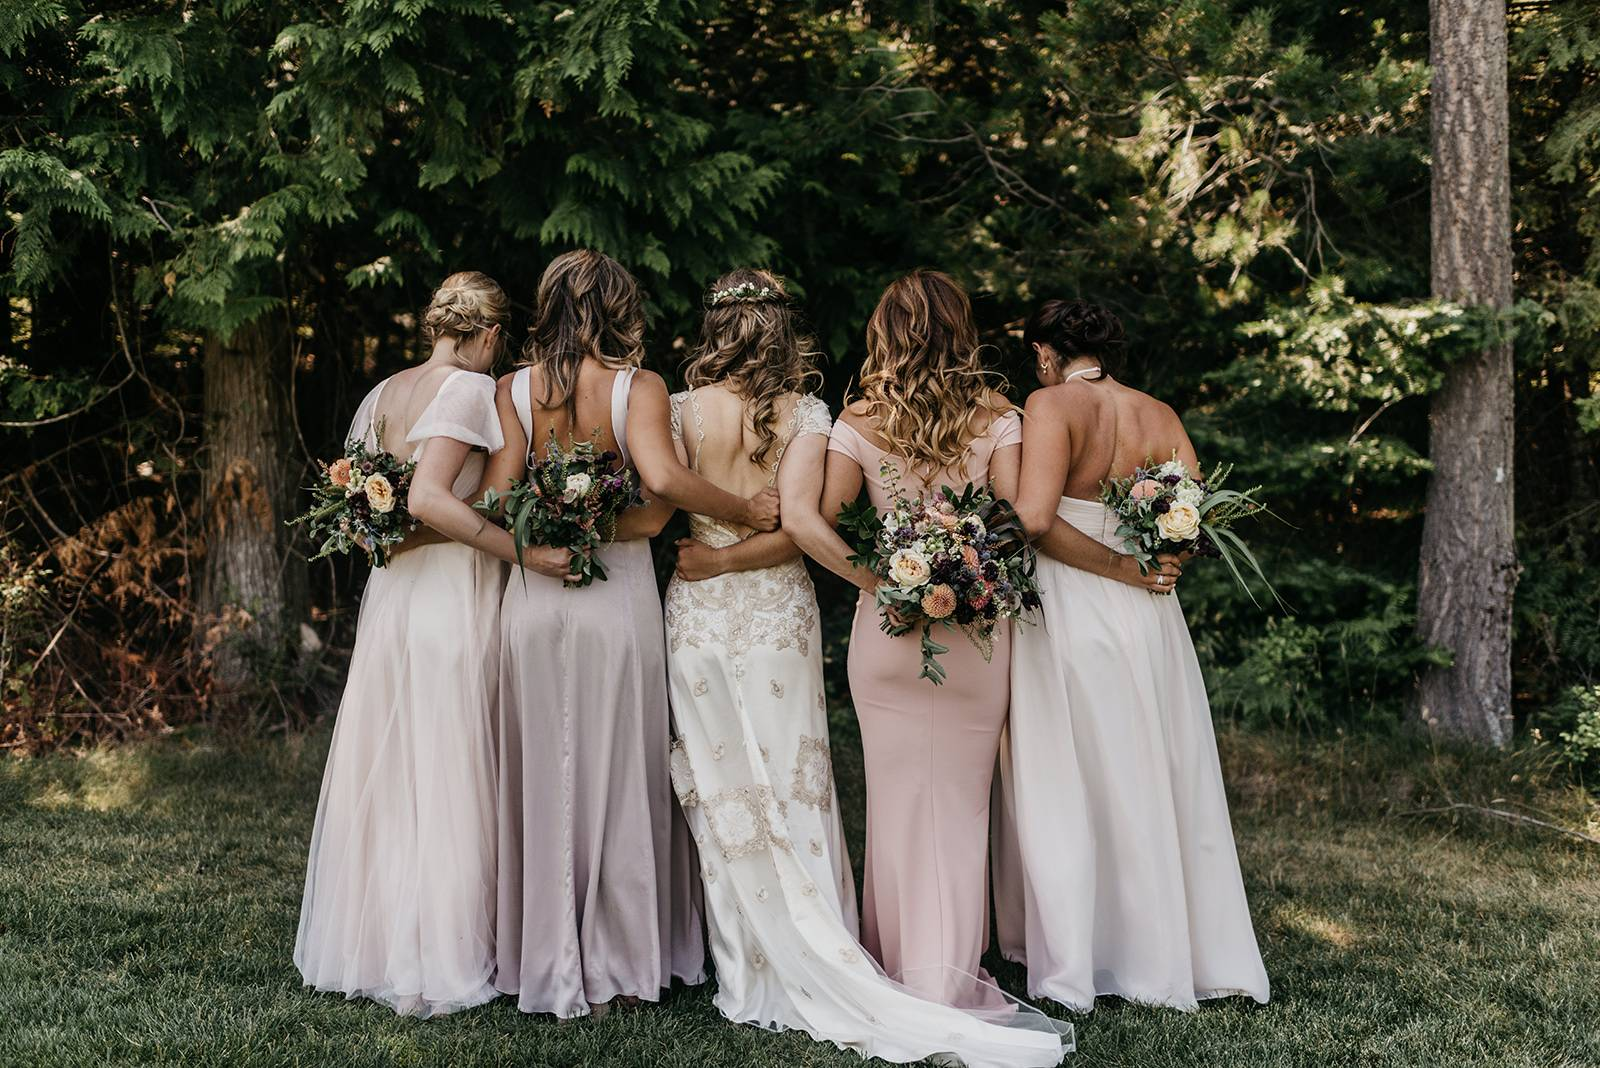 Heartfelt and Rustic Estate Wedding in Sandpoint, Idaho on Apple Brides